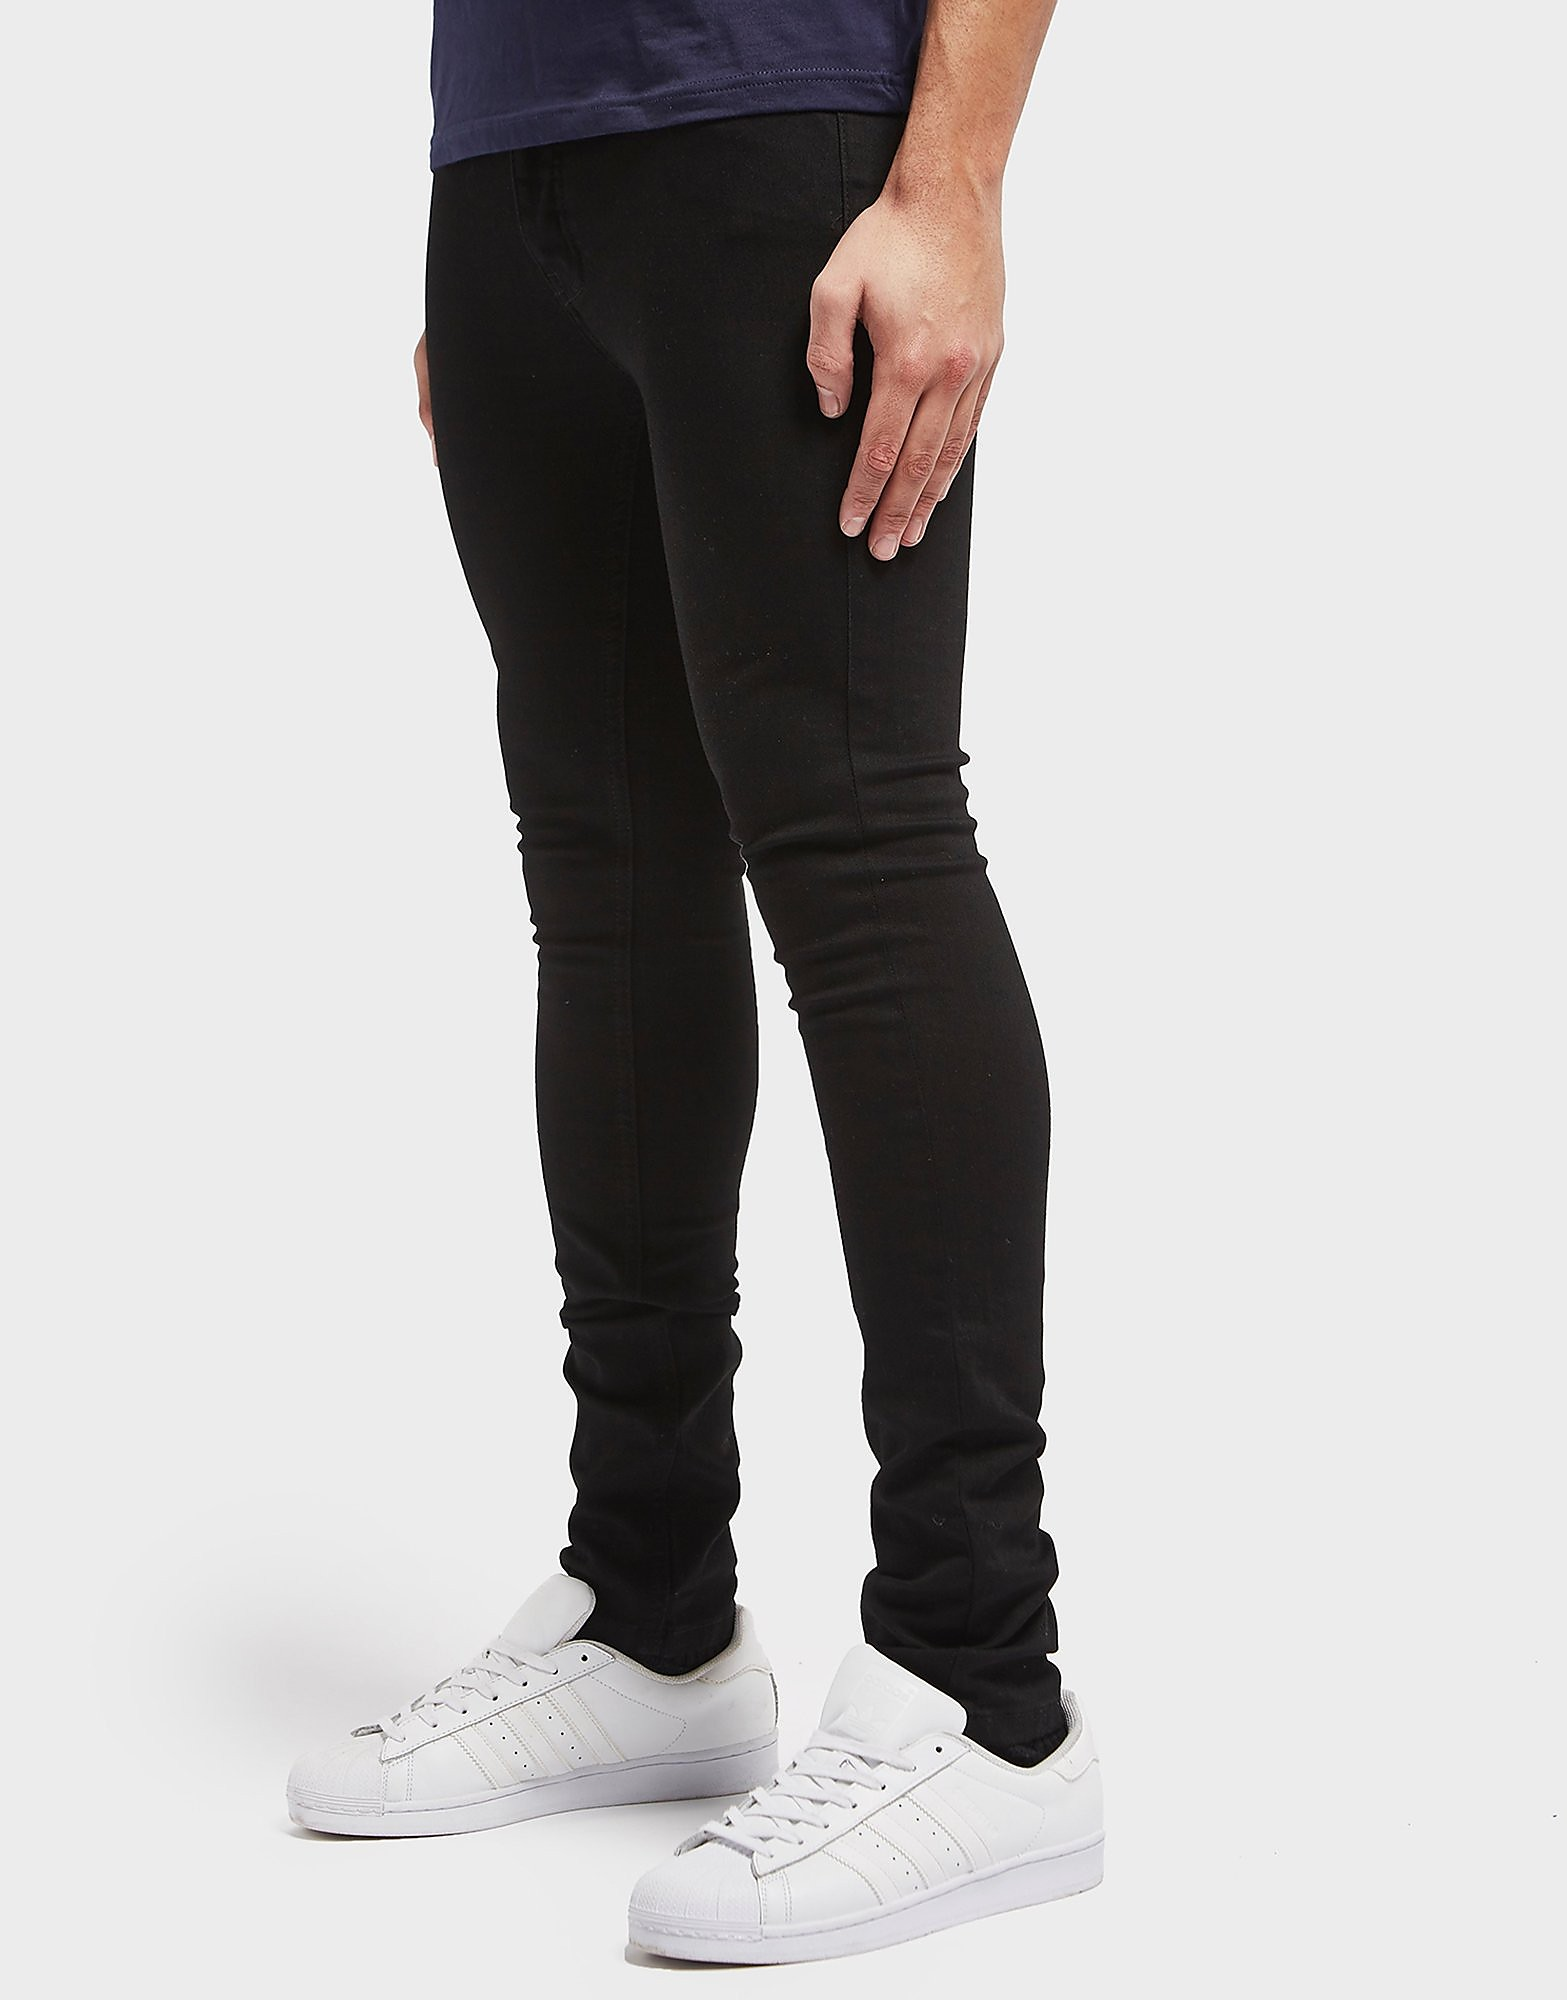 One True Saxon Black Skinny Jeans - Exclusive